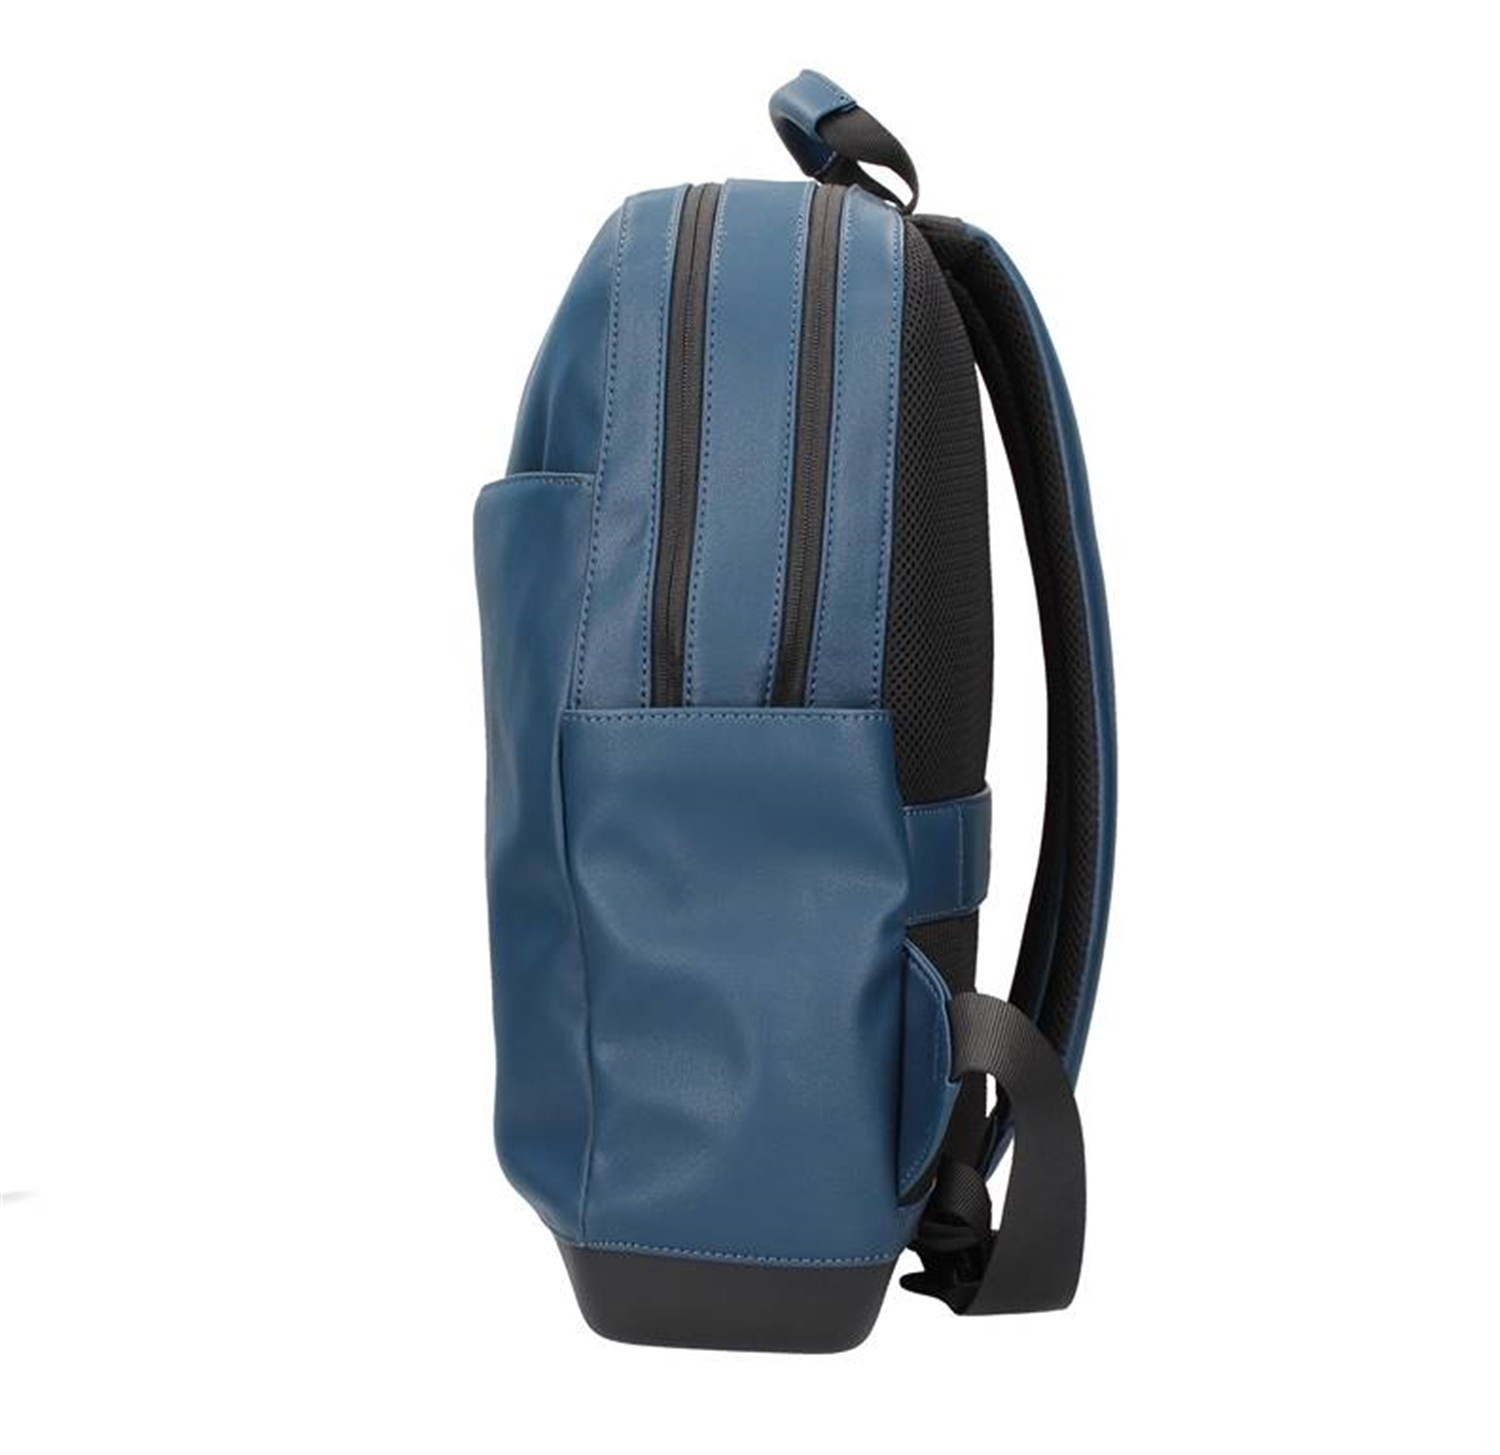 Moleskine Bags Accessories Backpacks BLUE ET86UPBK